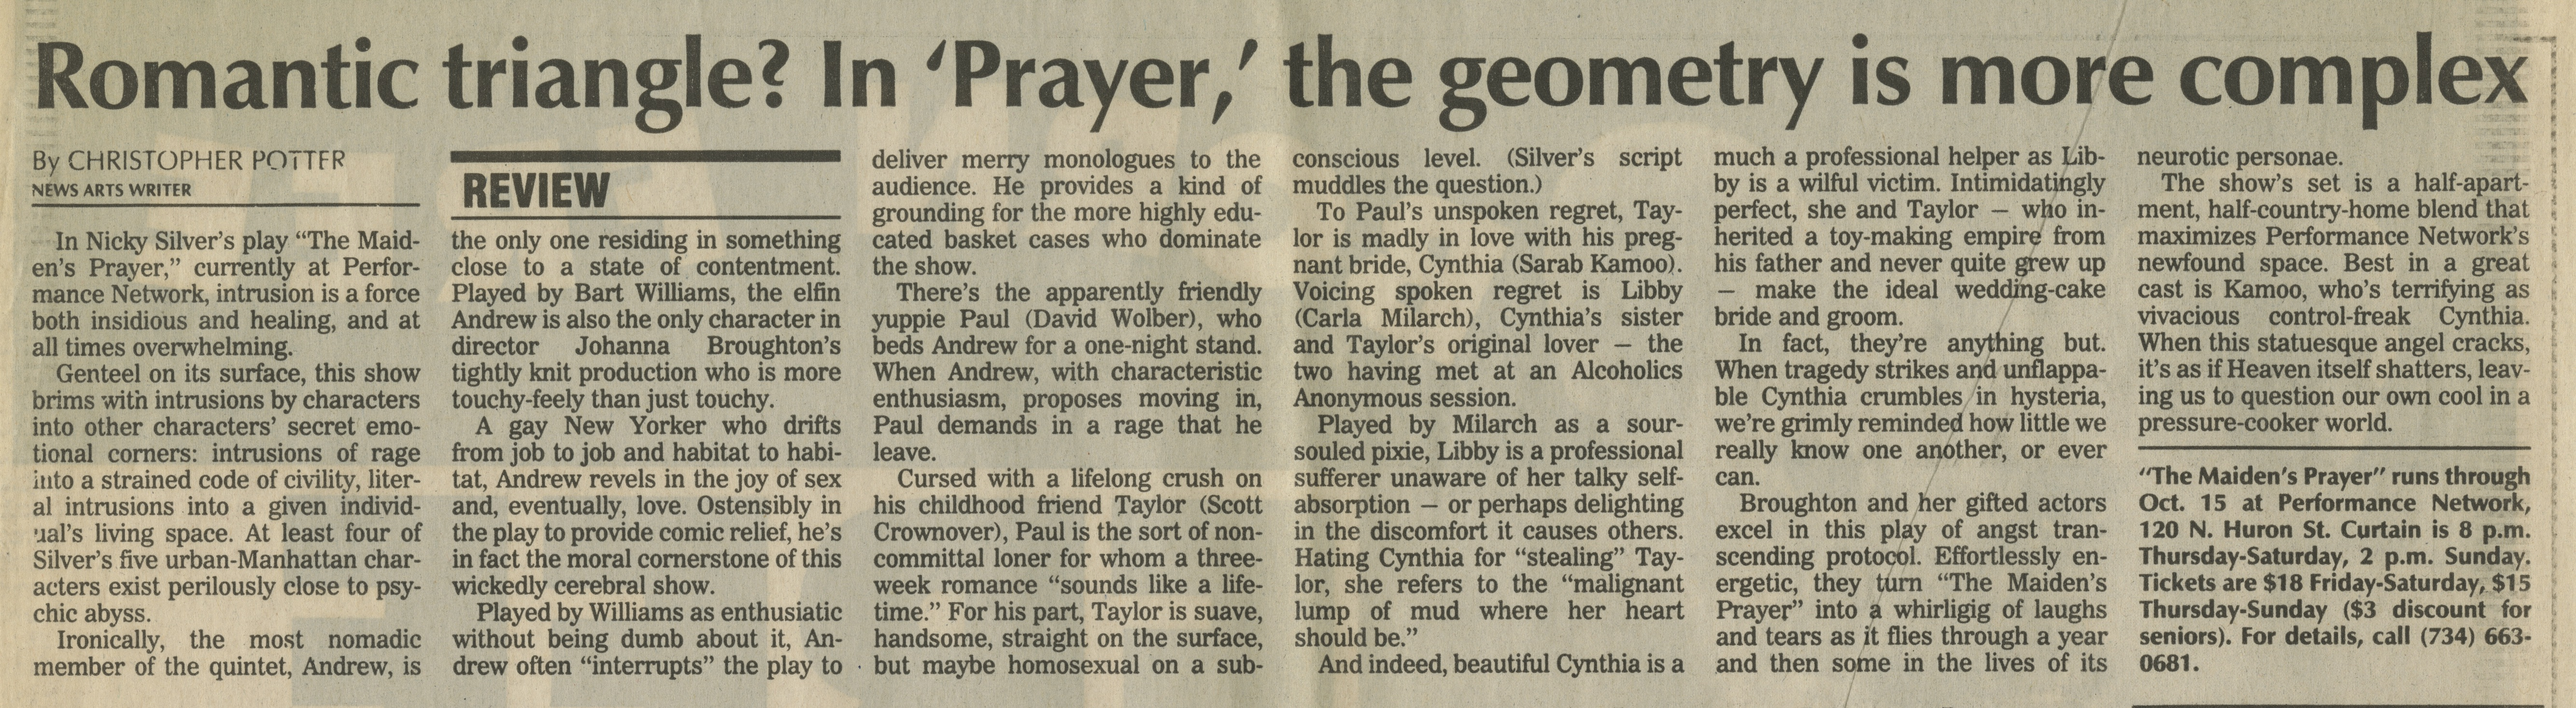 Romantic triangle? In 'Prayer,' the geometry is more complex image